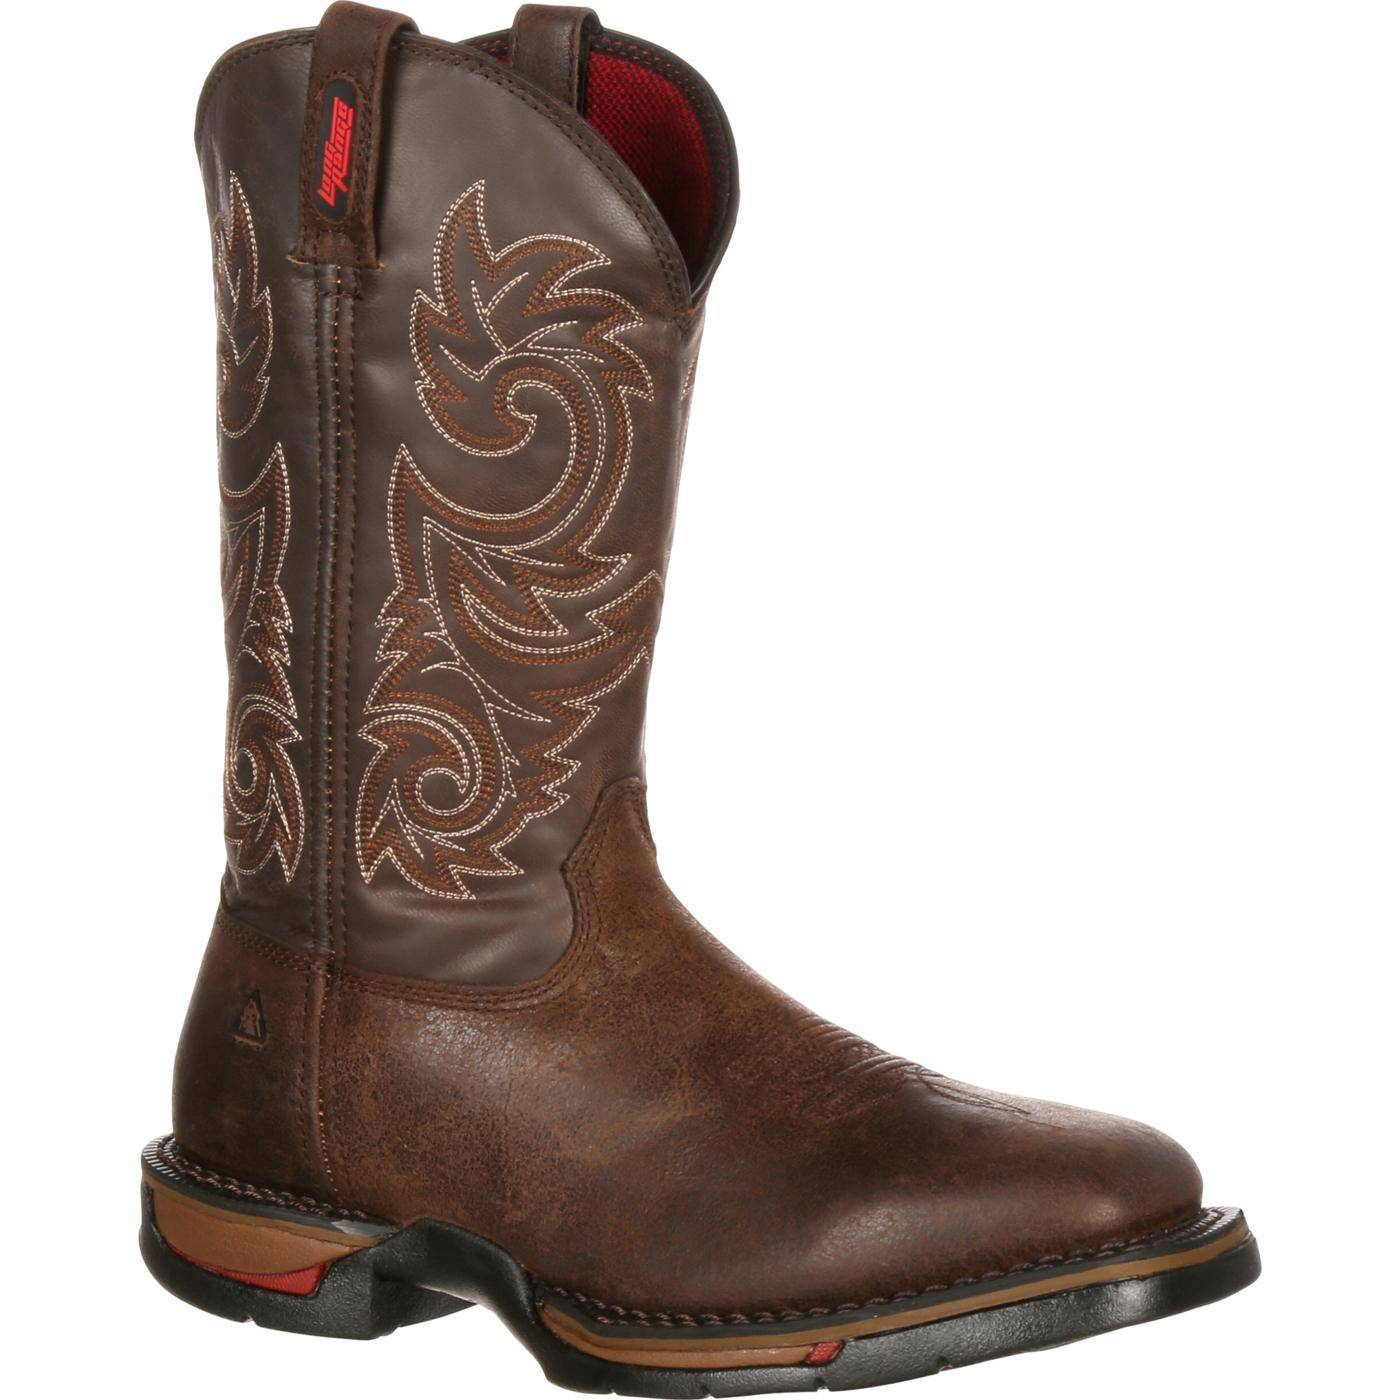 Rocky Long Range - Men's Comfortable Western Work Boots